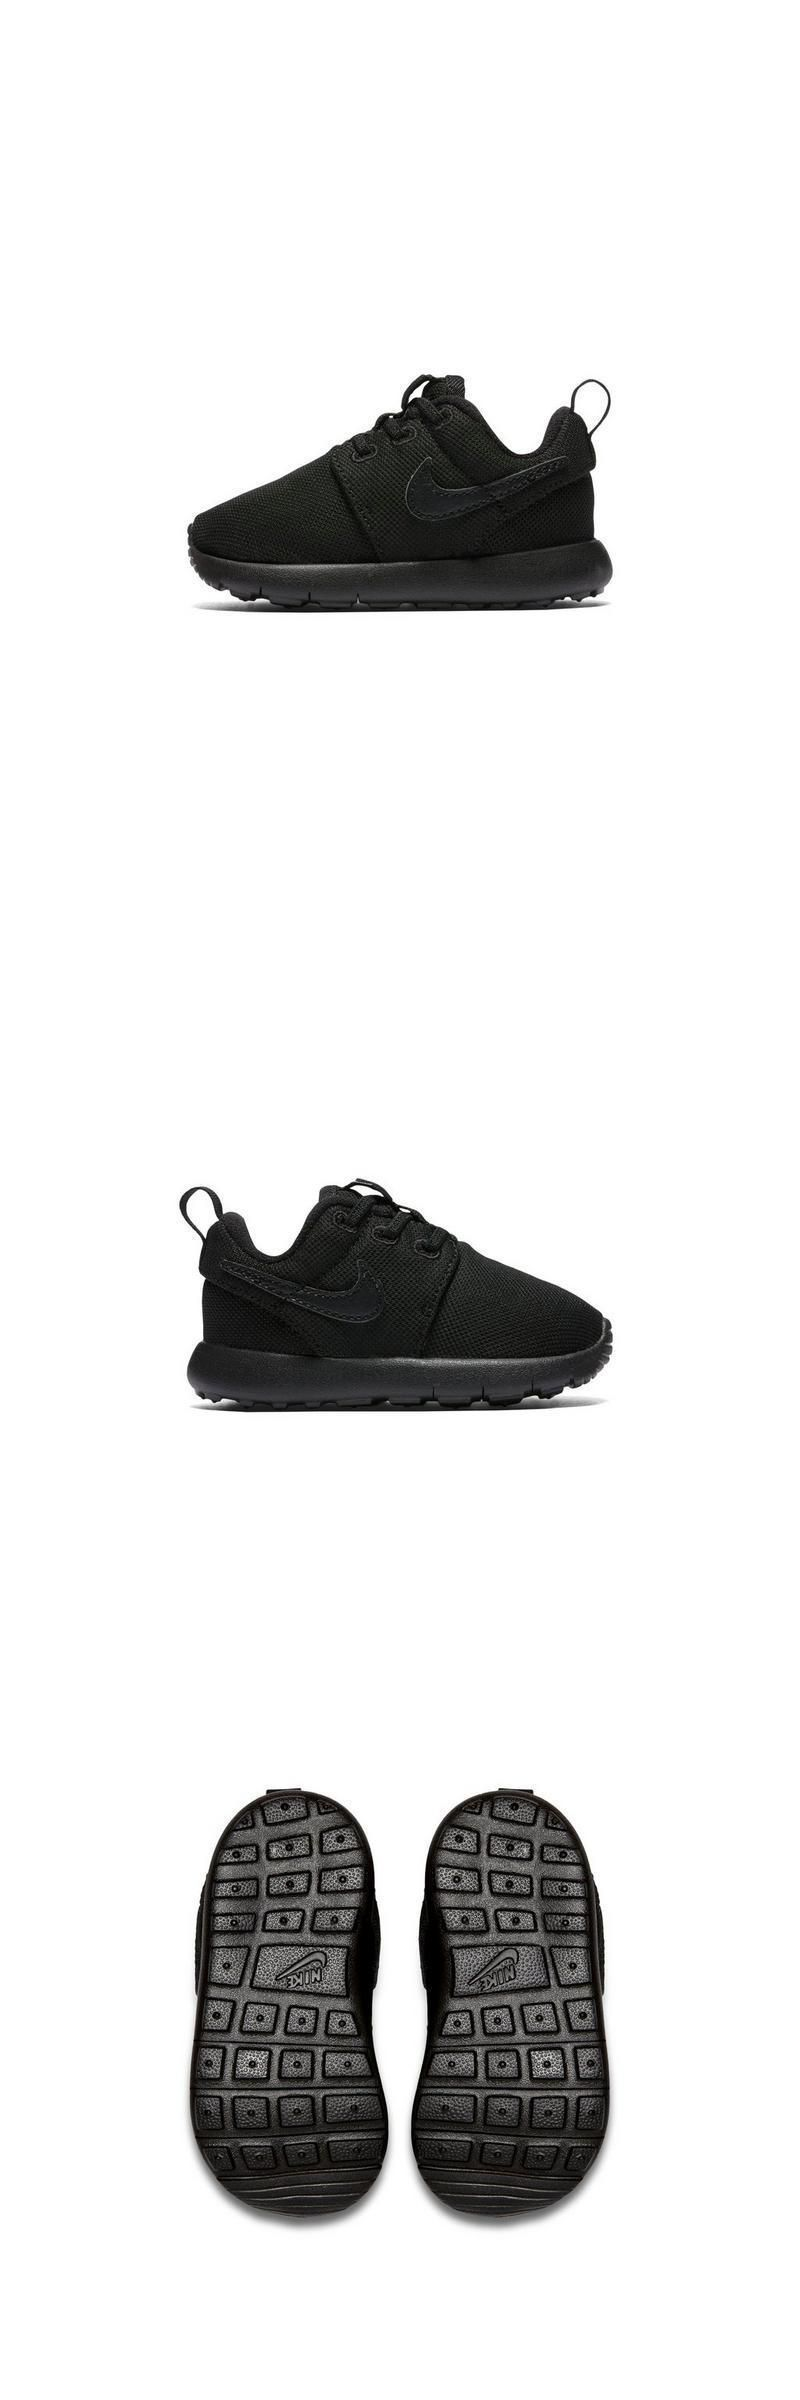 5f0e8ceb1ba Baby Shoes 147285: Nike Roshe One Triple Black Toddler Kids Casual Shoe  Sneaker Size 5C-10C New -> BUY IT NOW ONLY: $29.99 on #eBay #shoes #roshe  #triple ...